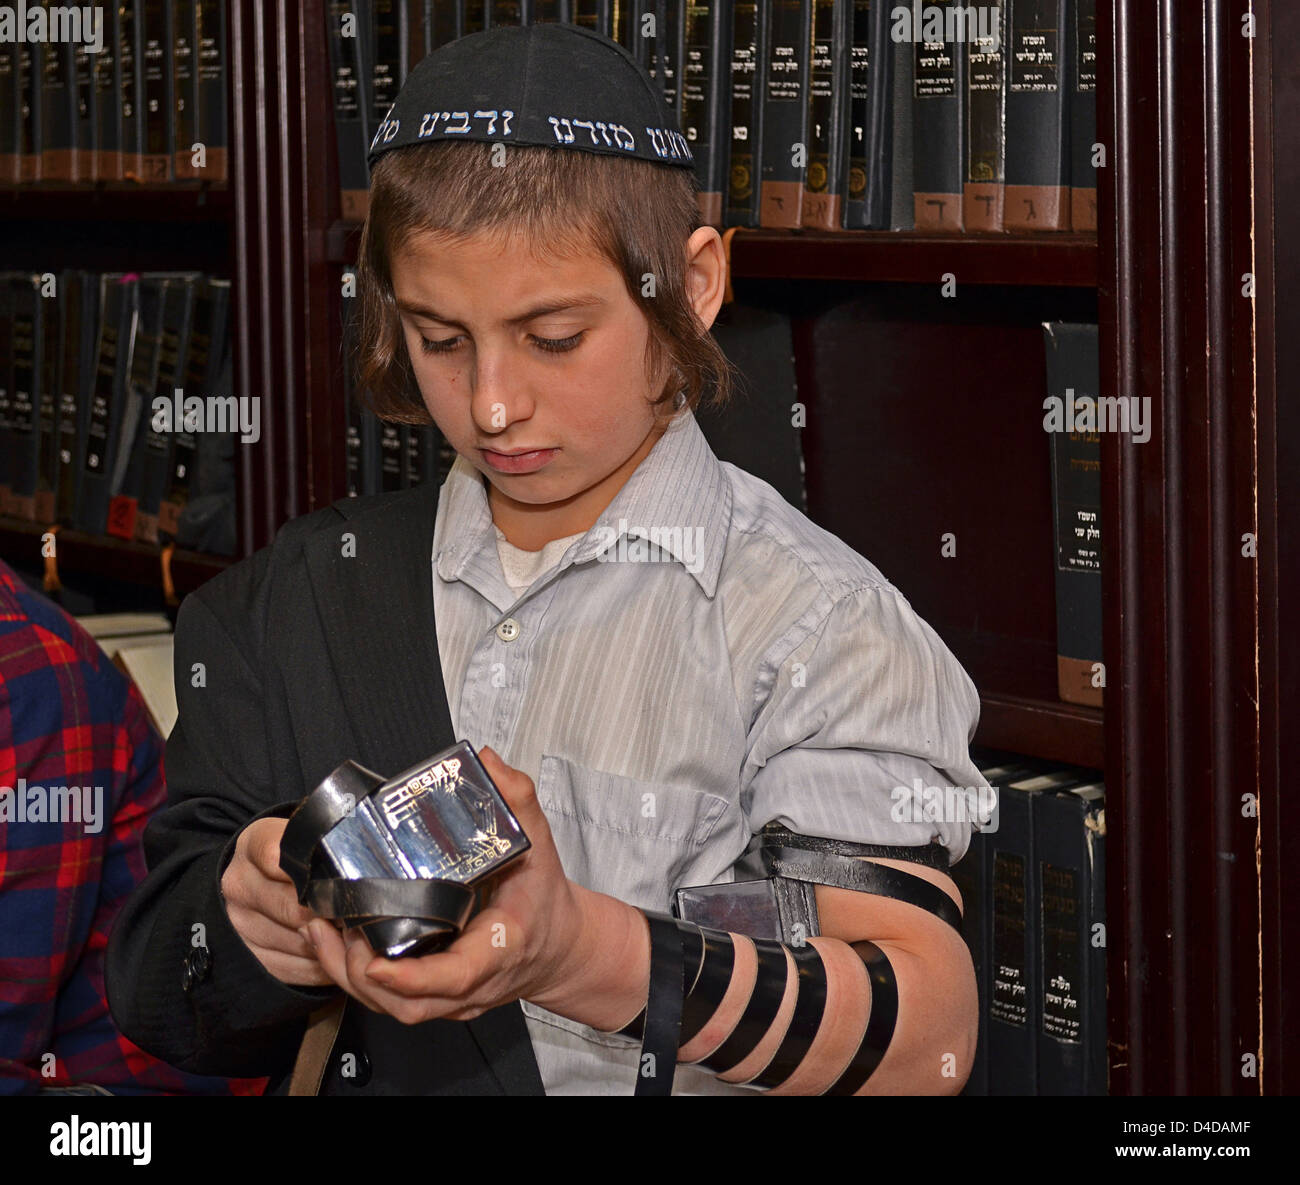 1Religious Jewish boy age 12 years and 10 months prepares for bar mitzvah and putting on Teffilin - Stock Image